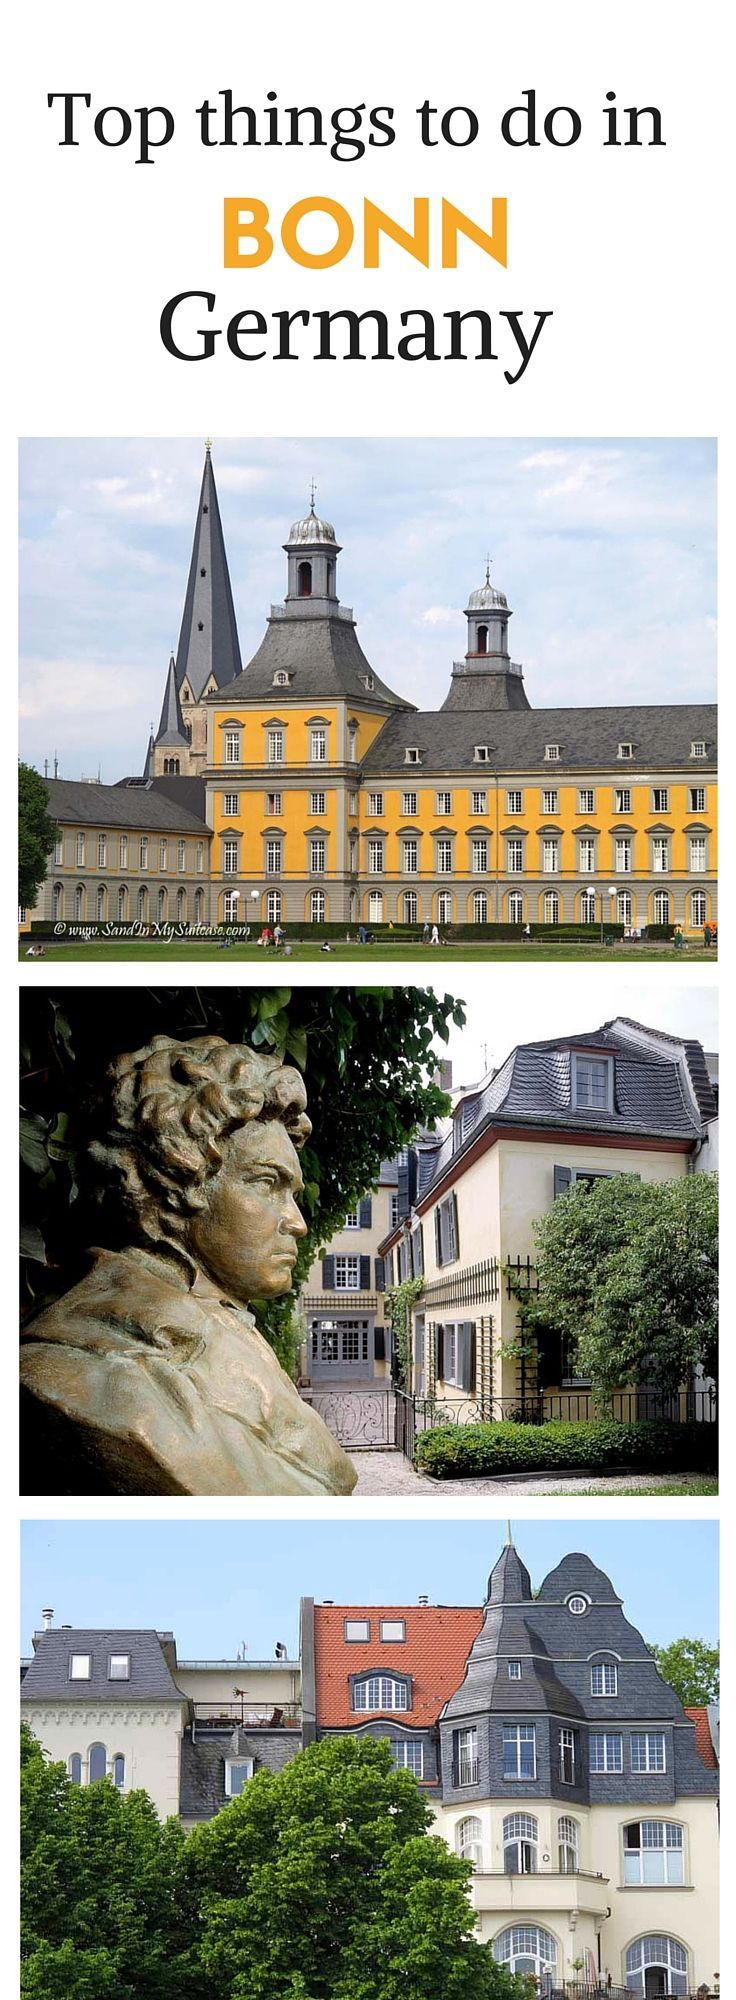 See Beethovens House And Other Things To Do In Bonn Visit